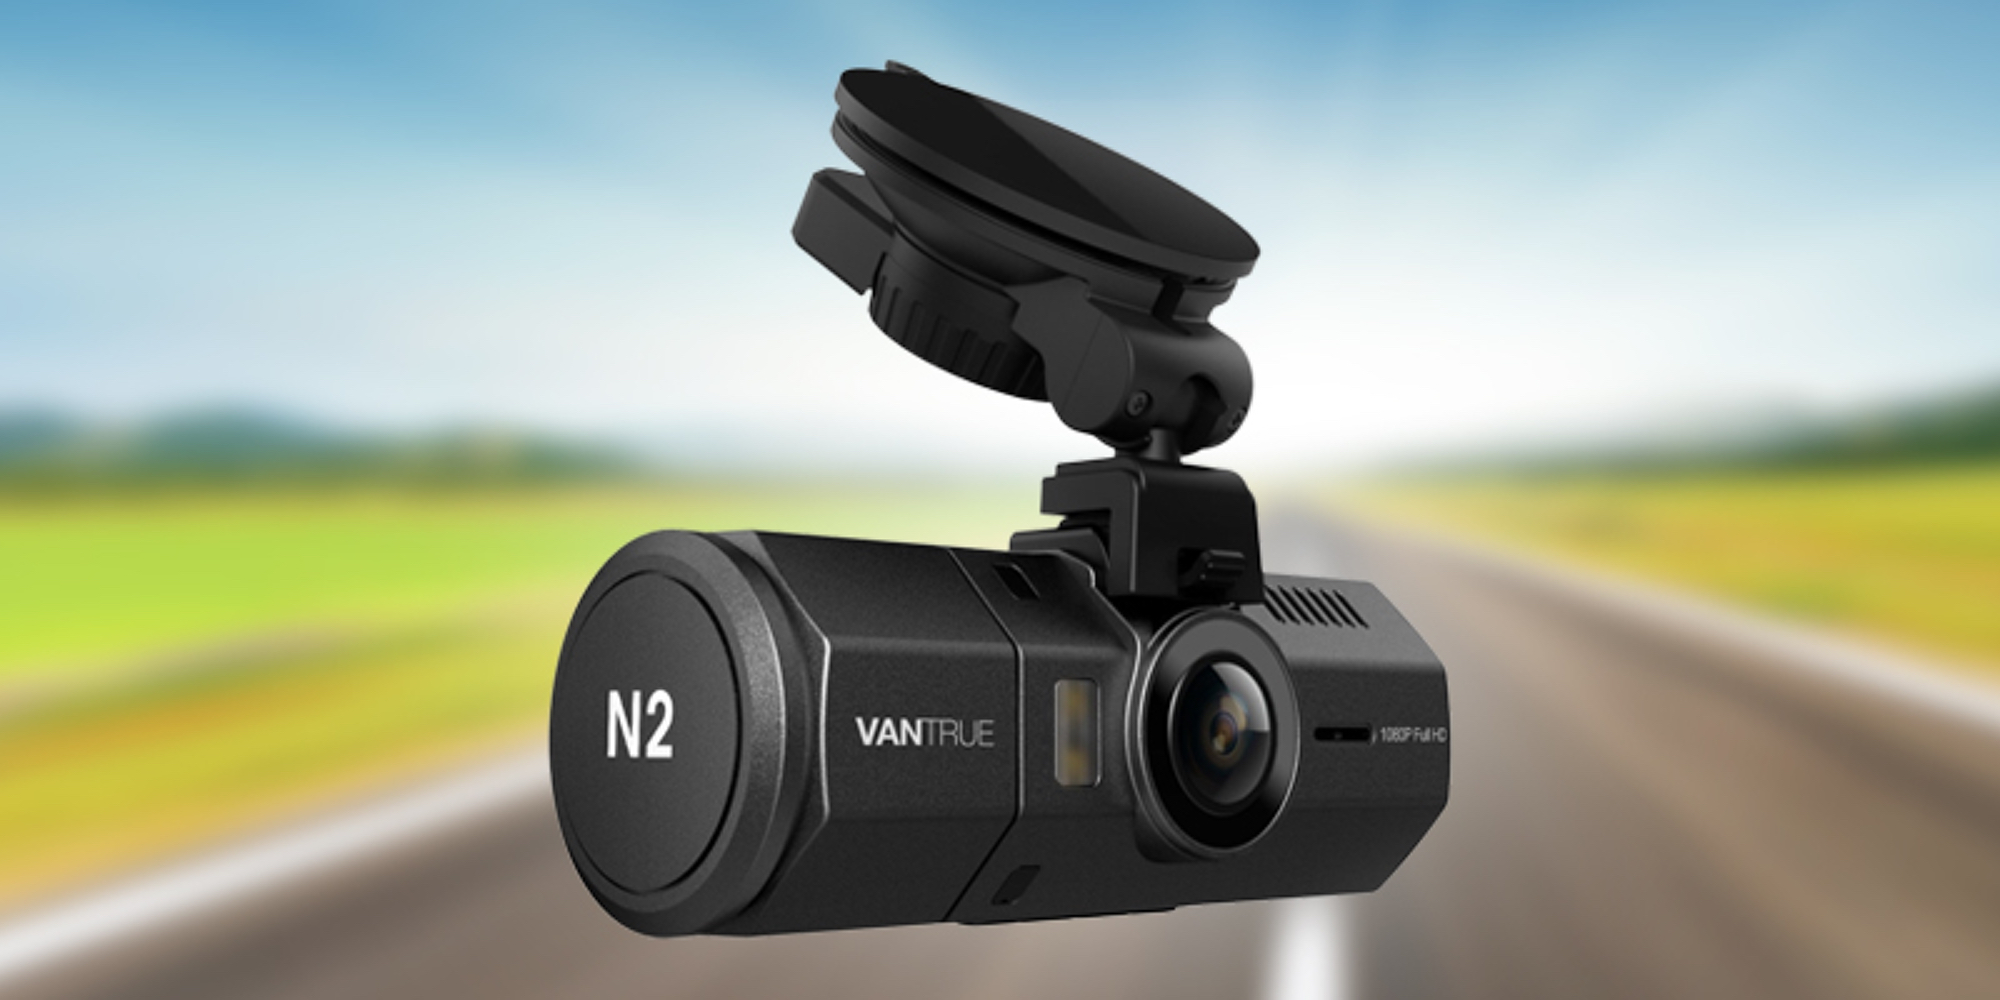 Keep a record of your trips, accidents, & more w/ these 1080p dash cameras from $99